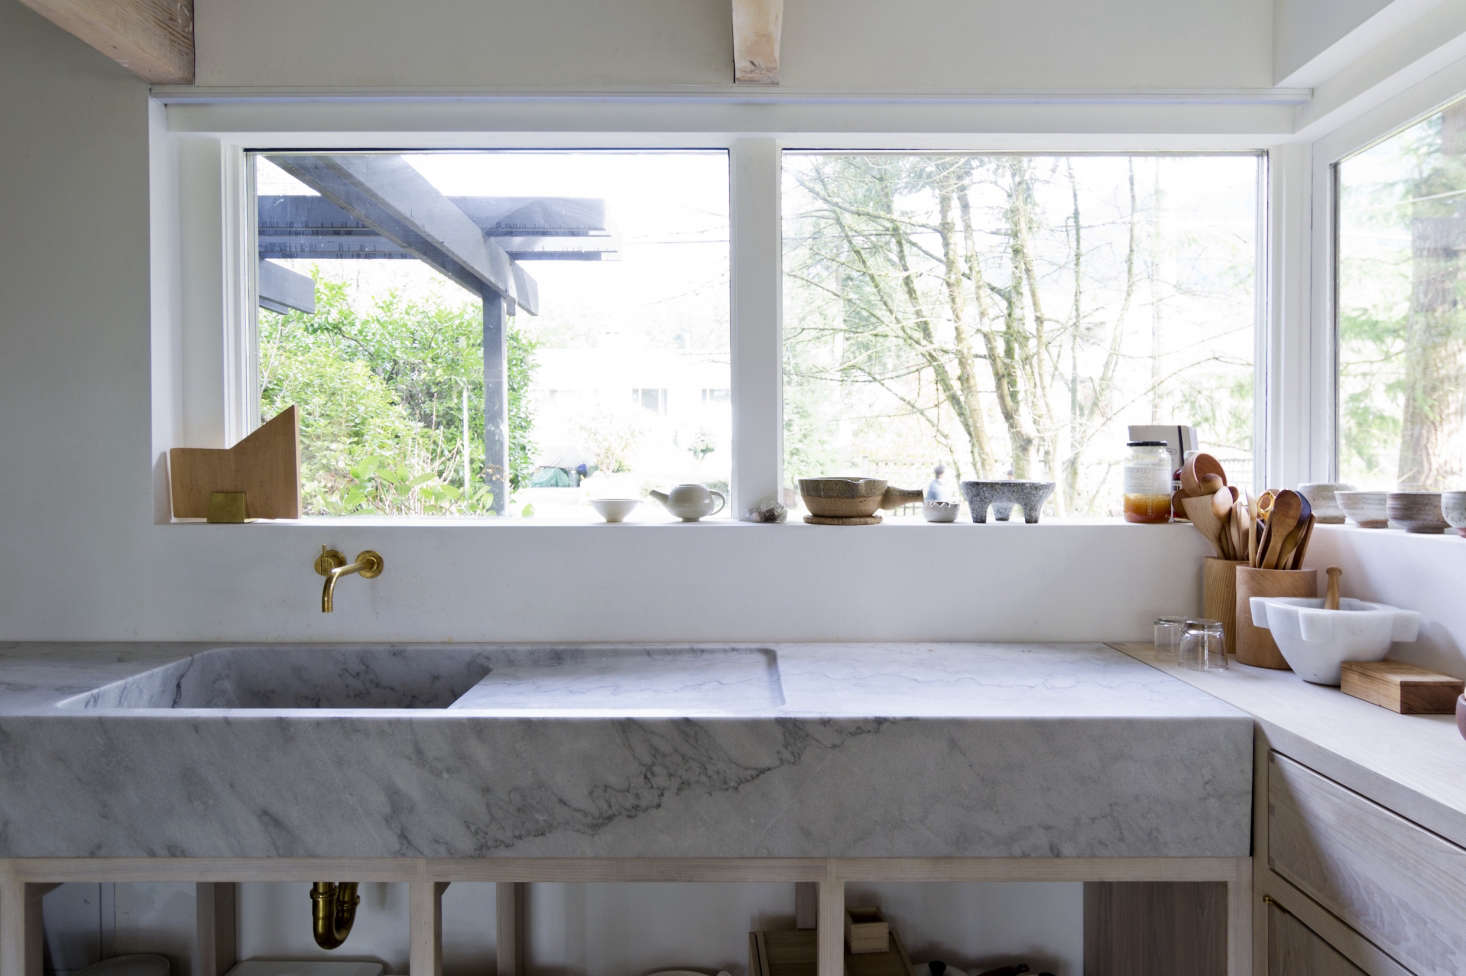 An integrated marble sink (with drain board) carved froma huge slab of marble from the Hisnet Inlet quarry on Vancouver Island, as seen in one of our favorite kitchens of all time:Kitchen of the Week: A Monumental Marble Countertop.Photograph courtesyofScott & Scott Architects.